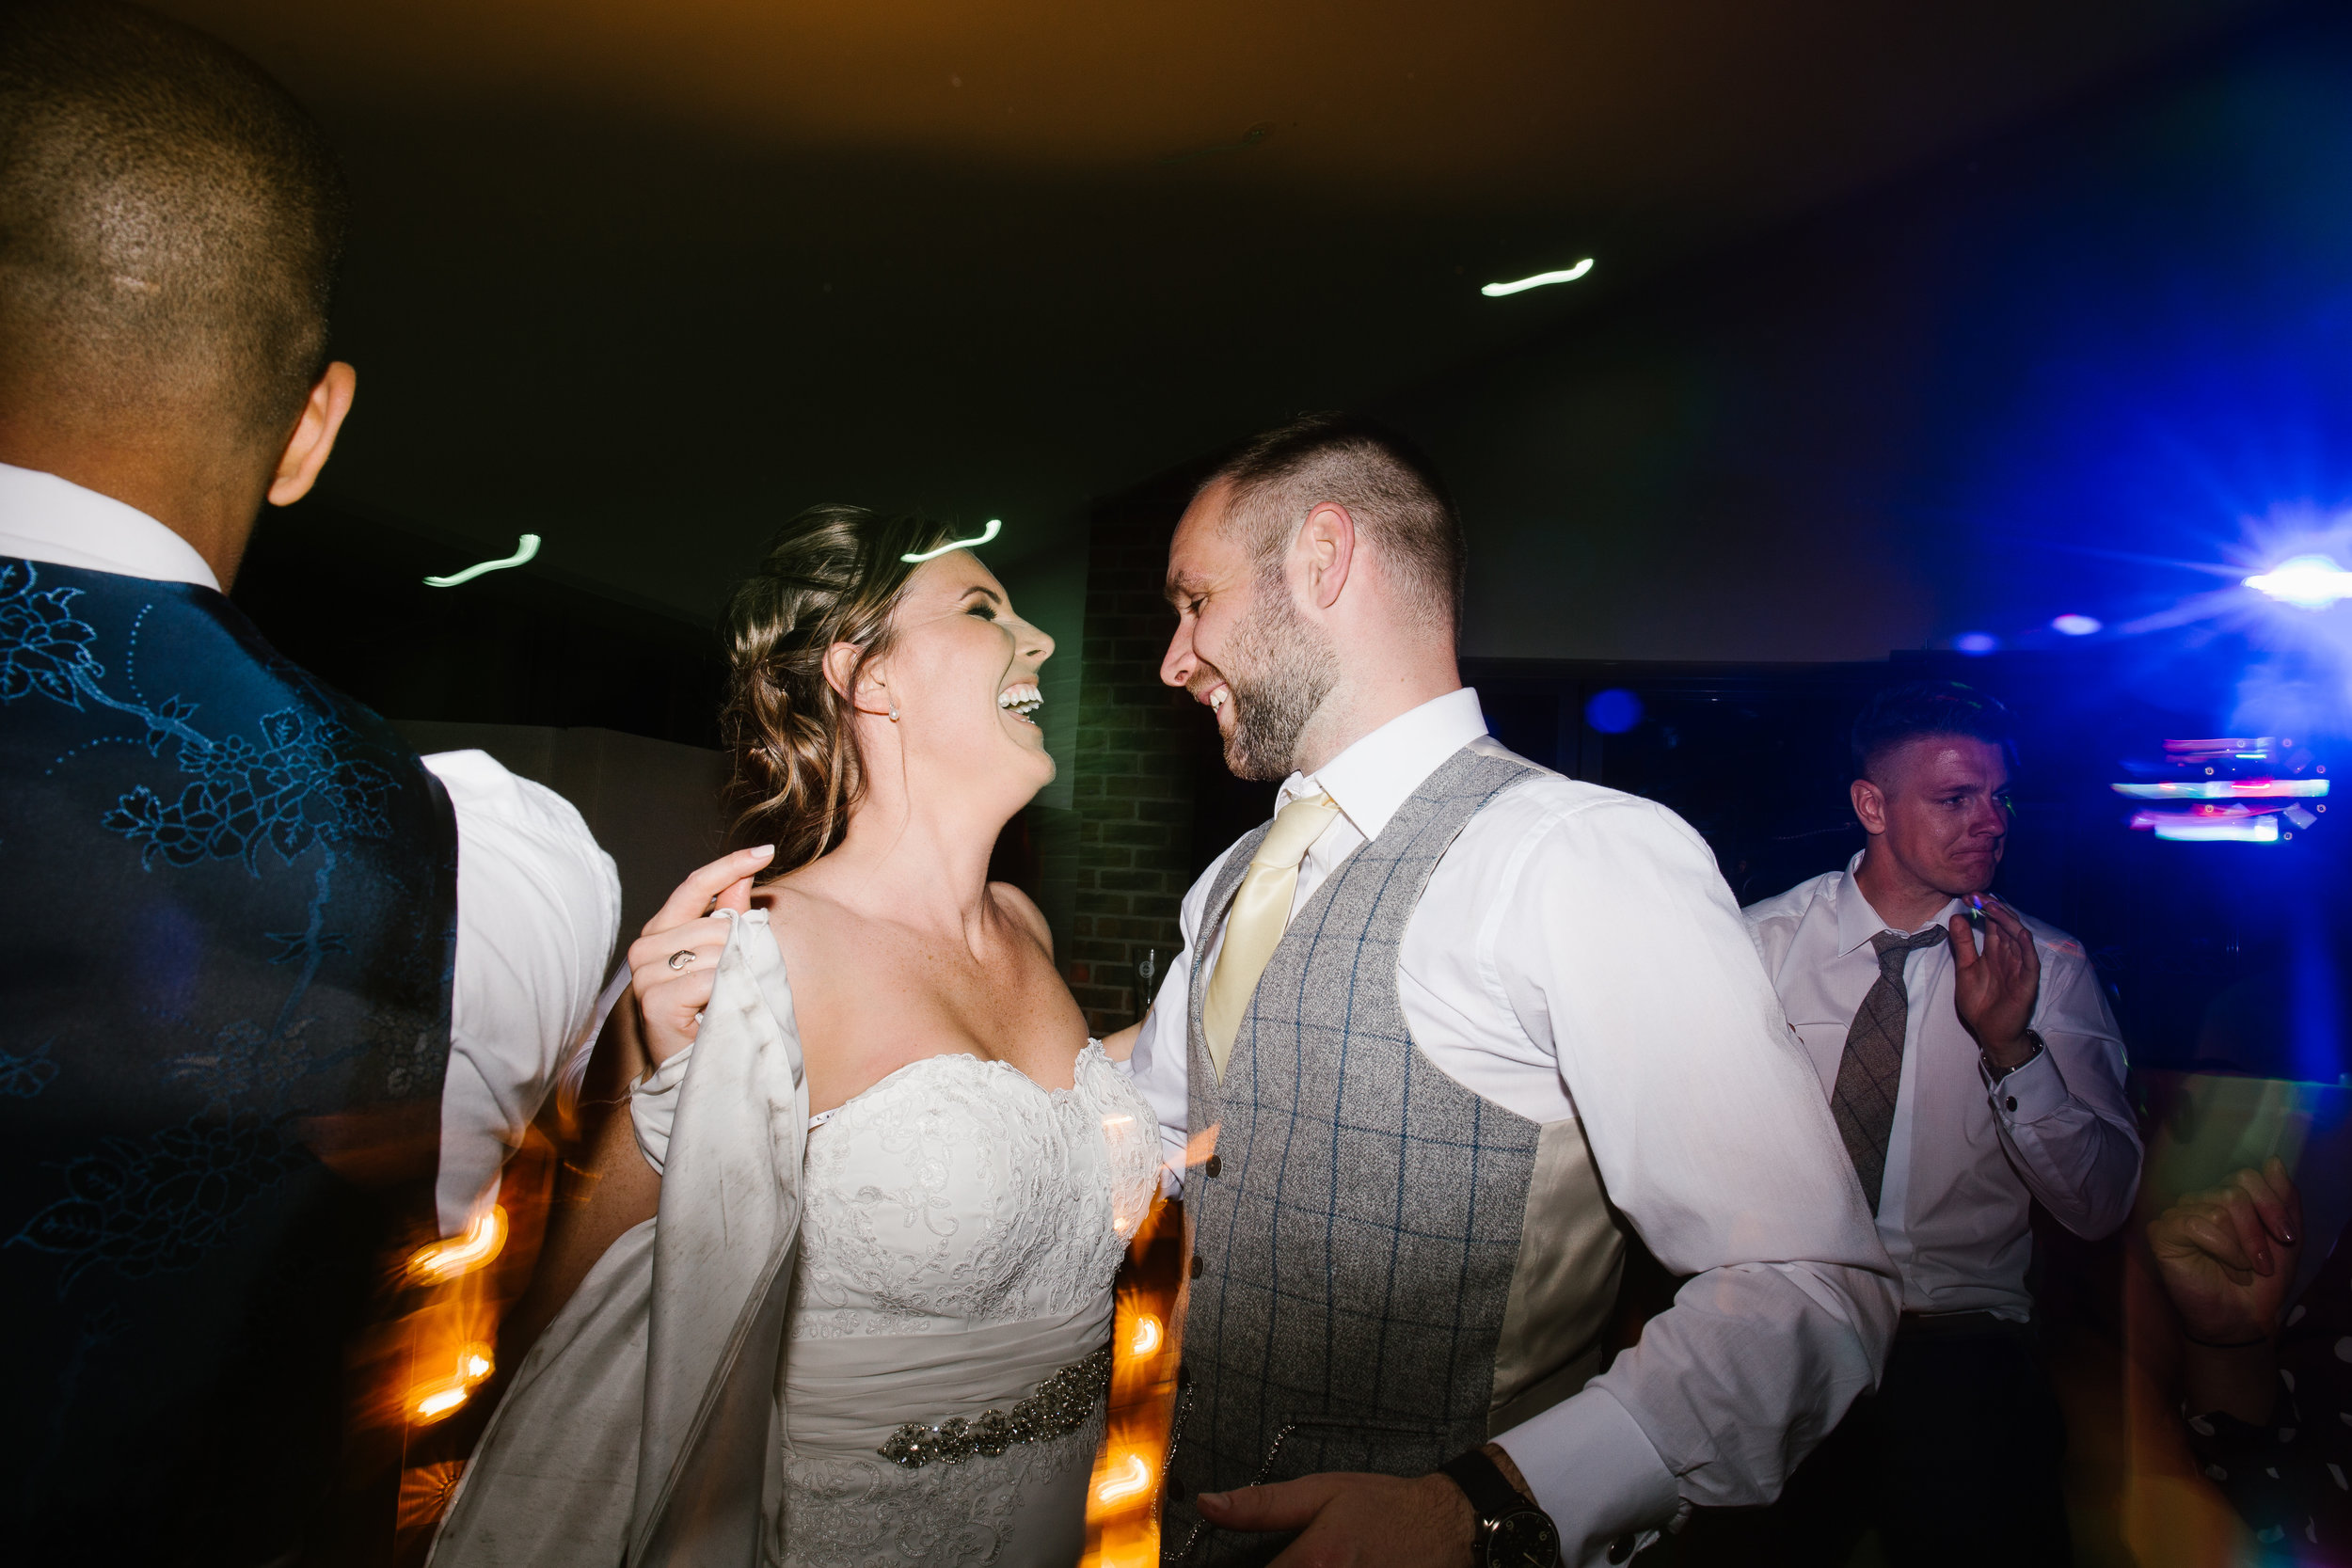 bride and groom on the last dance of the evening at their epic wedding day at the boat house at aston marina in staffordshire